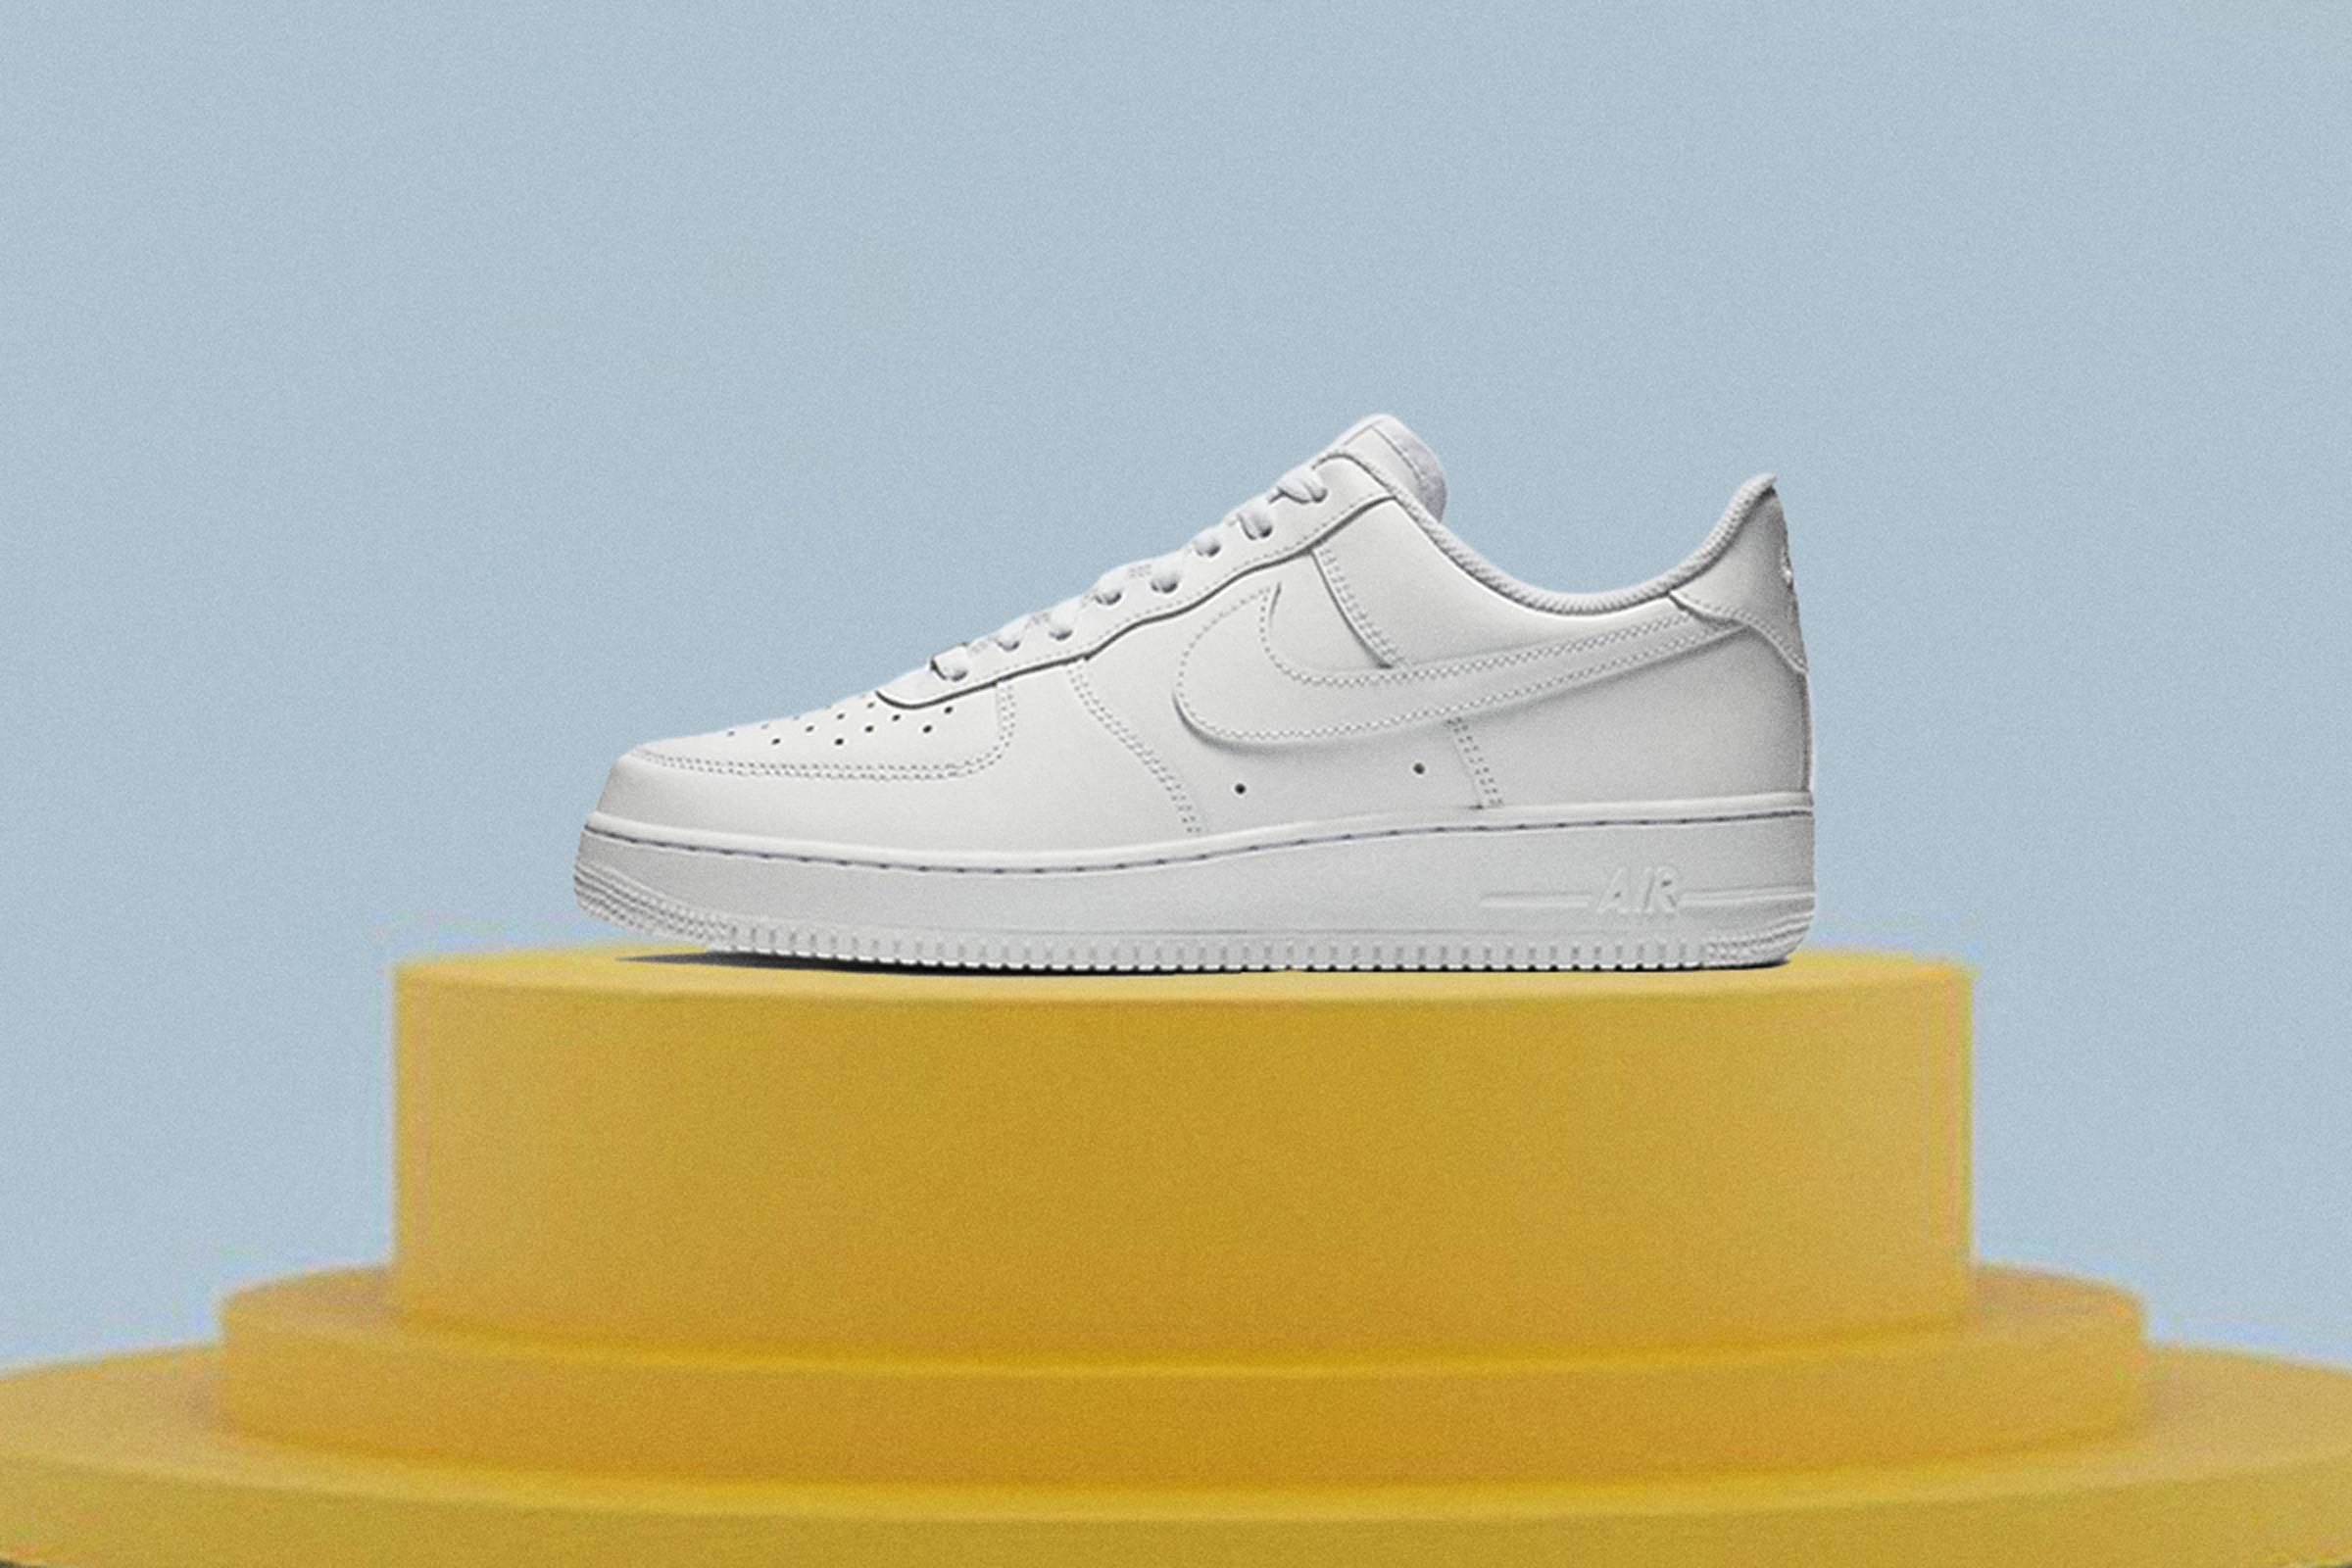 The 10 Best Selling Sneakers on Grailed: October 2020